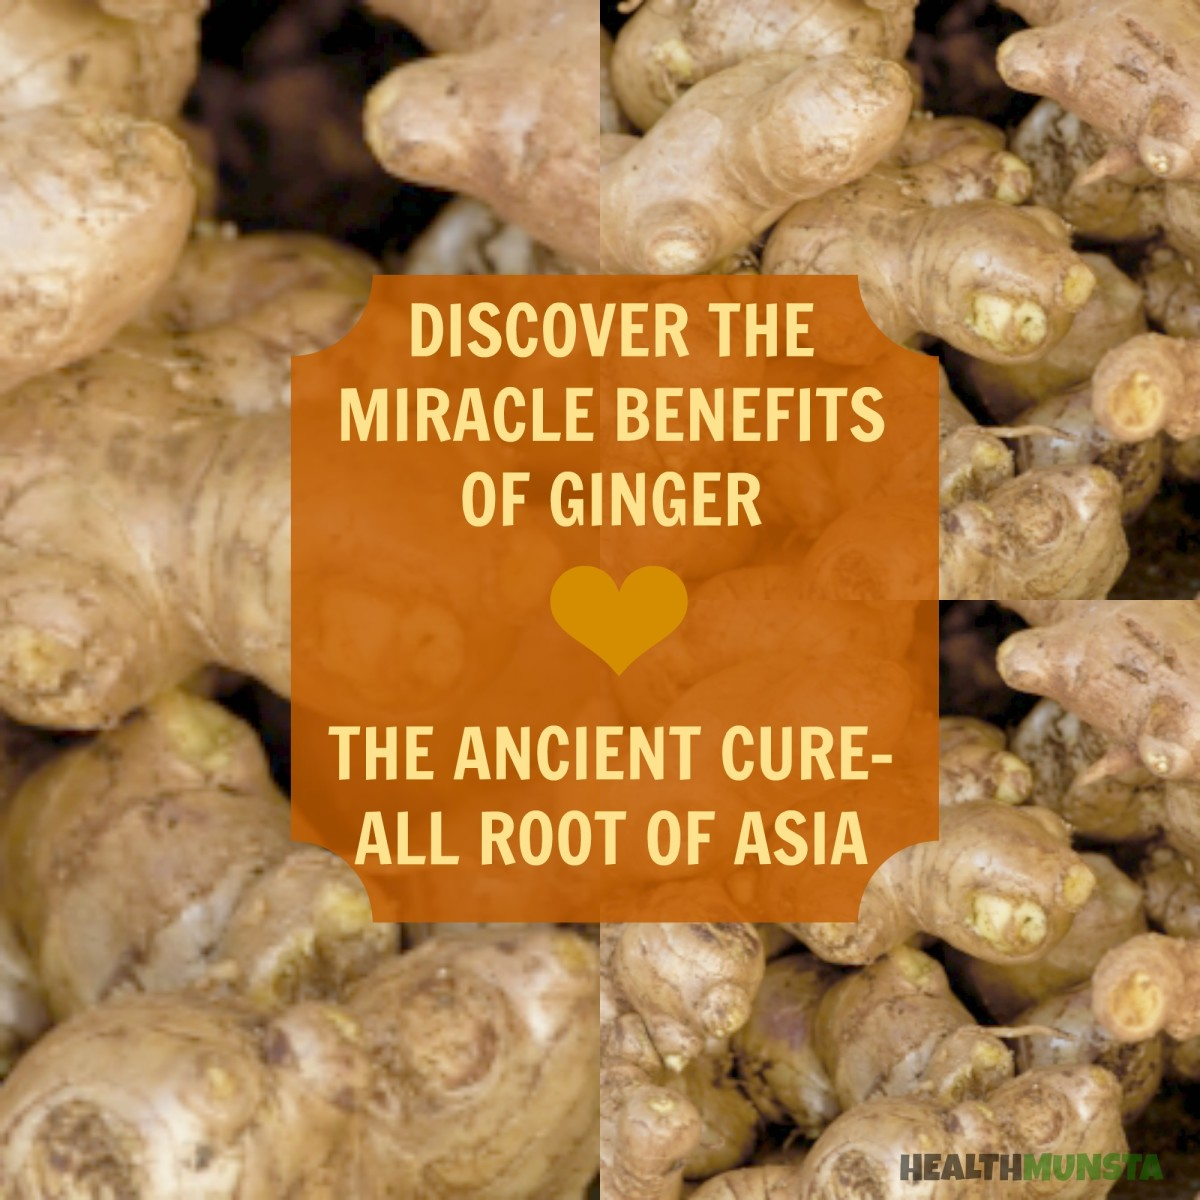 10 Health Benefits of Ginger, the Ancient Cure-all Root of Asia